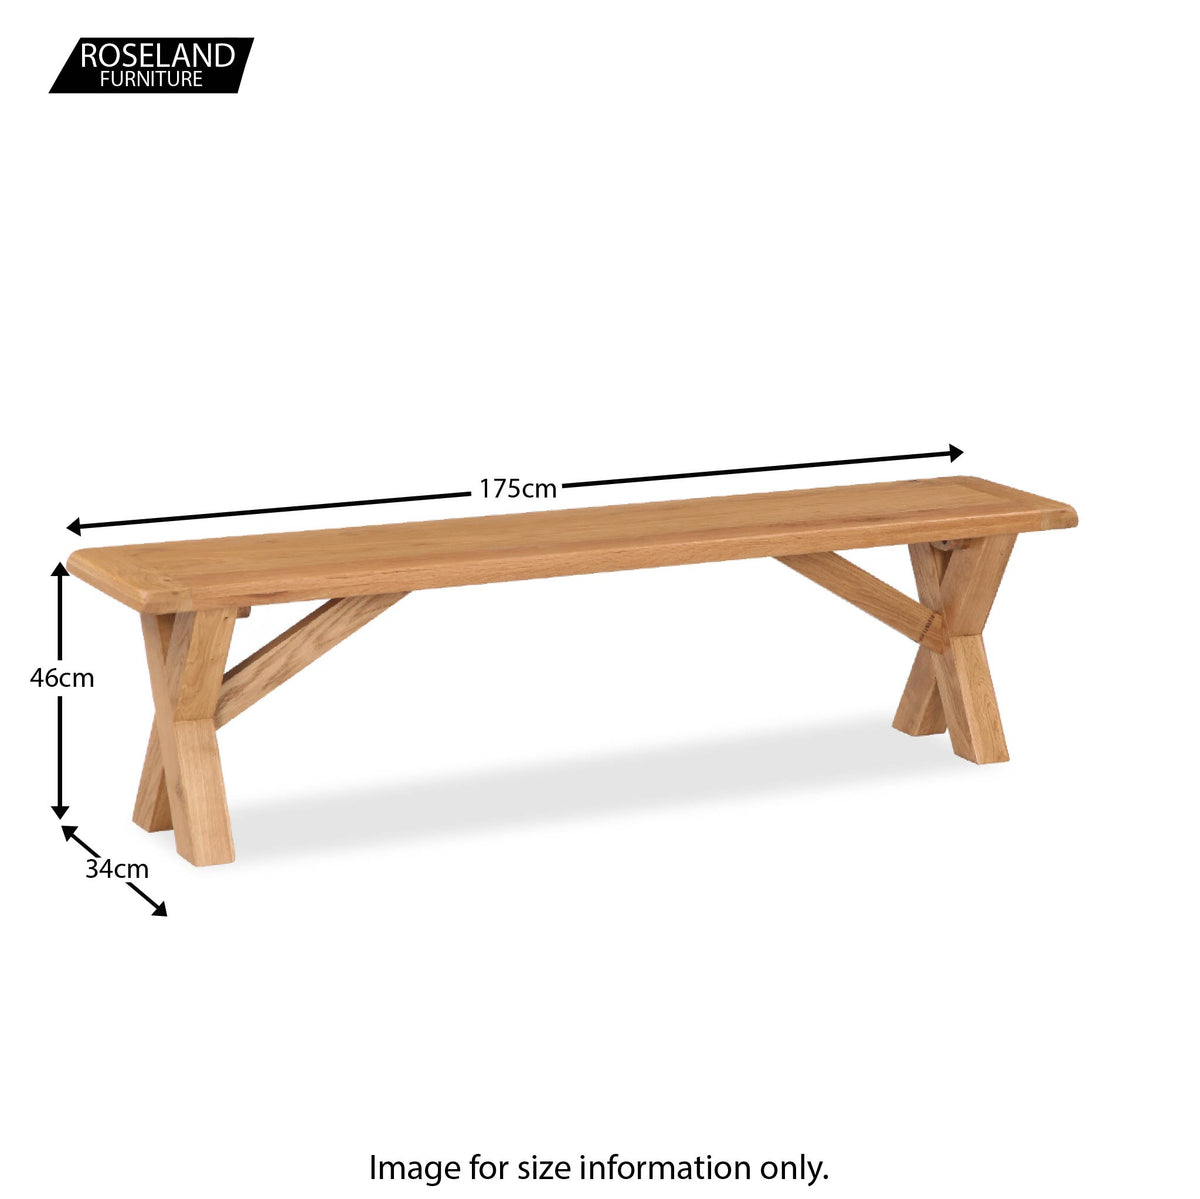 Zelah Oak Cross Legged Bench - Size Guide